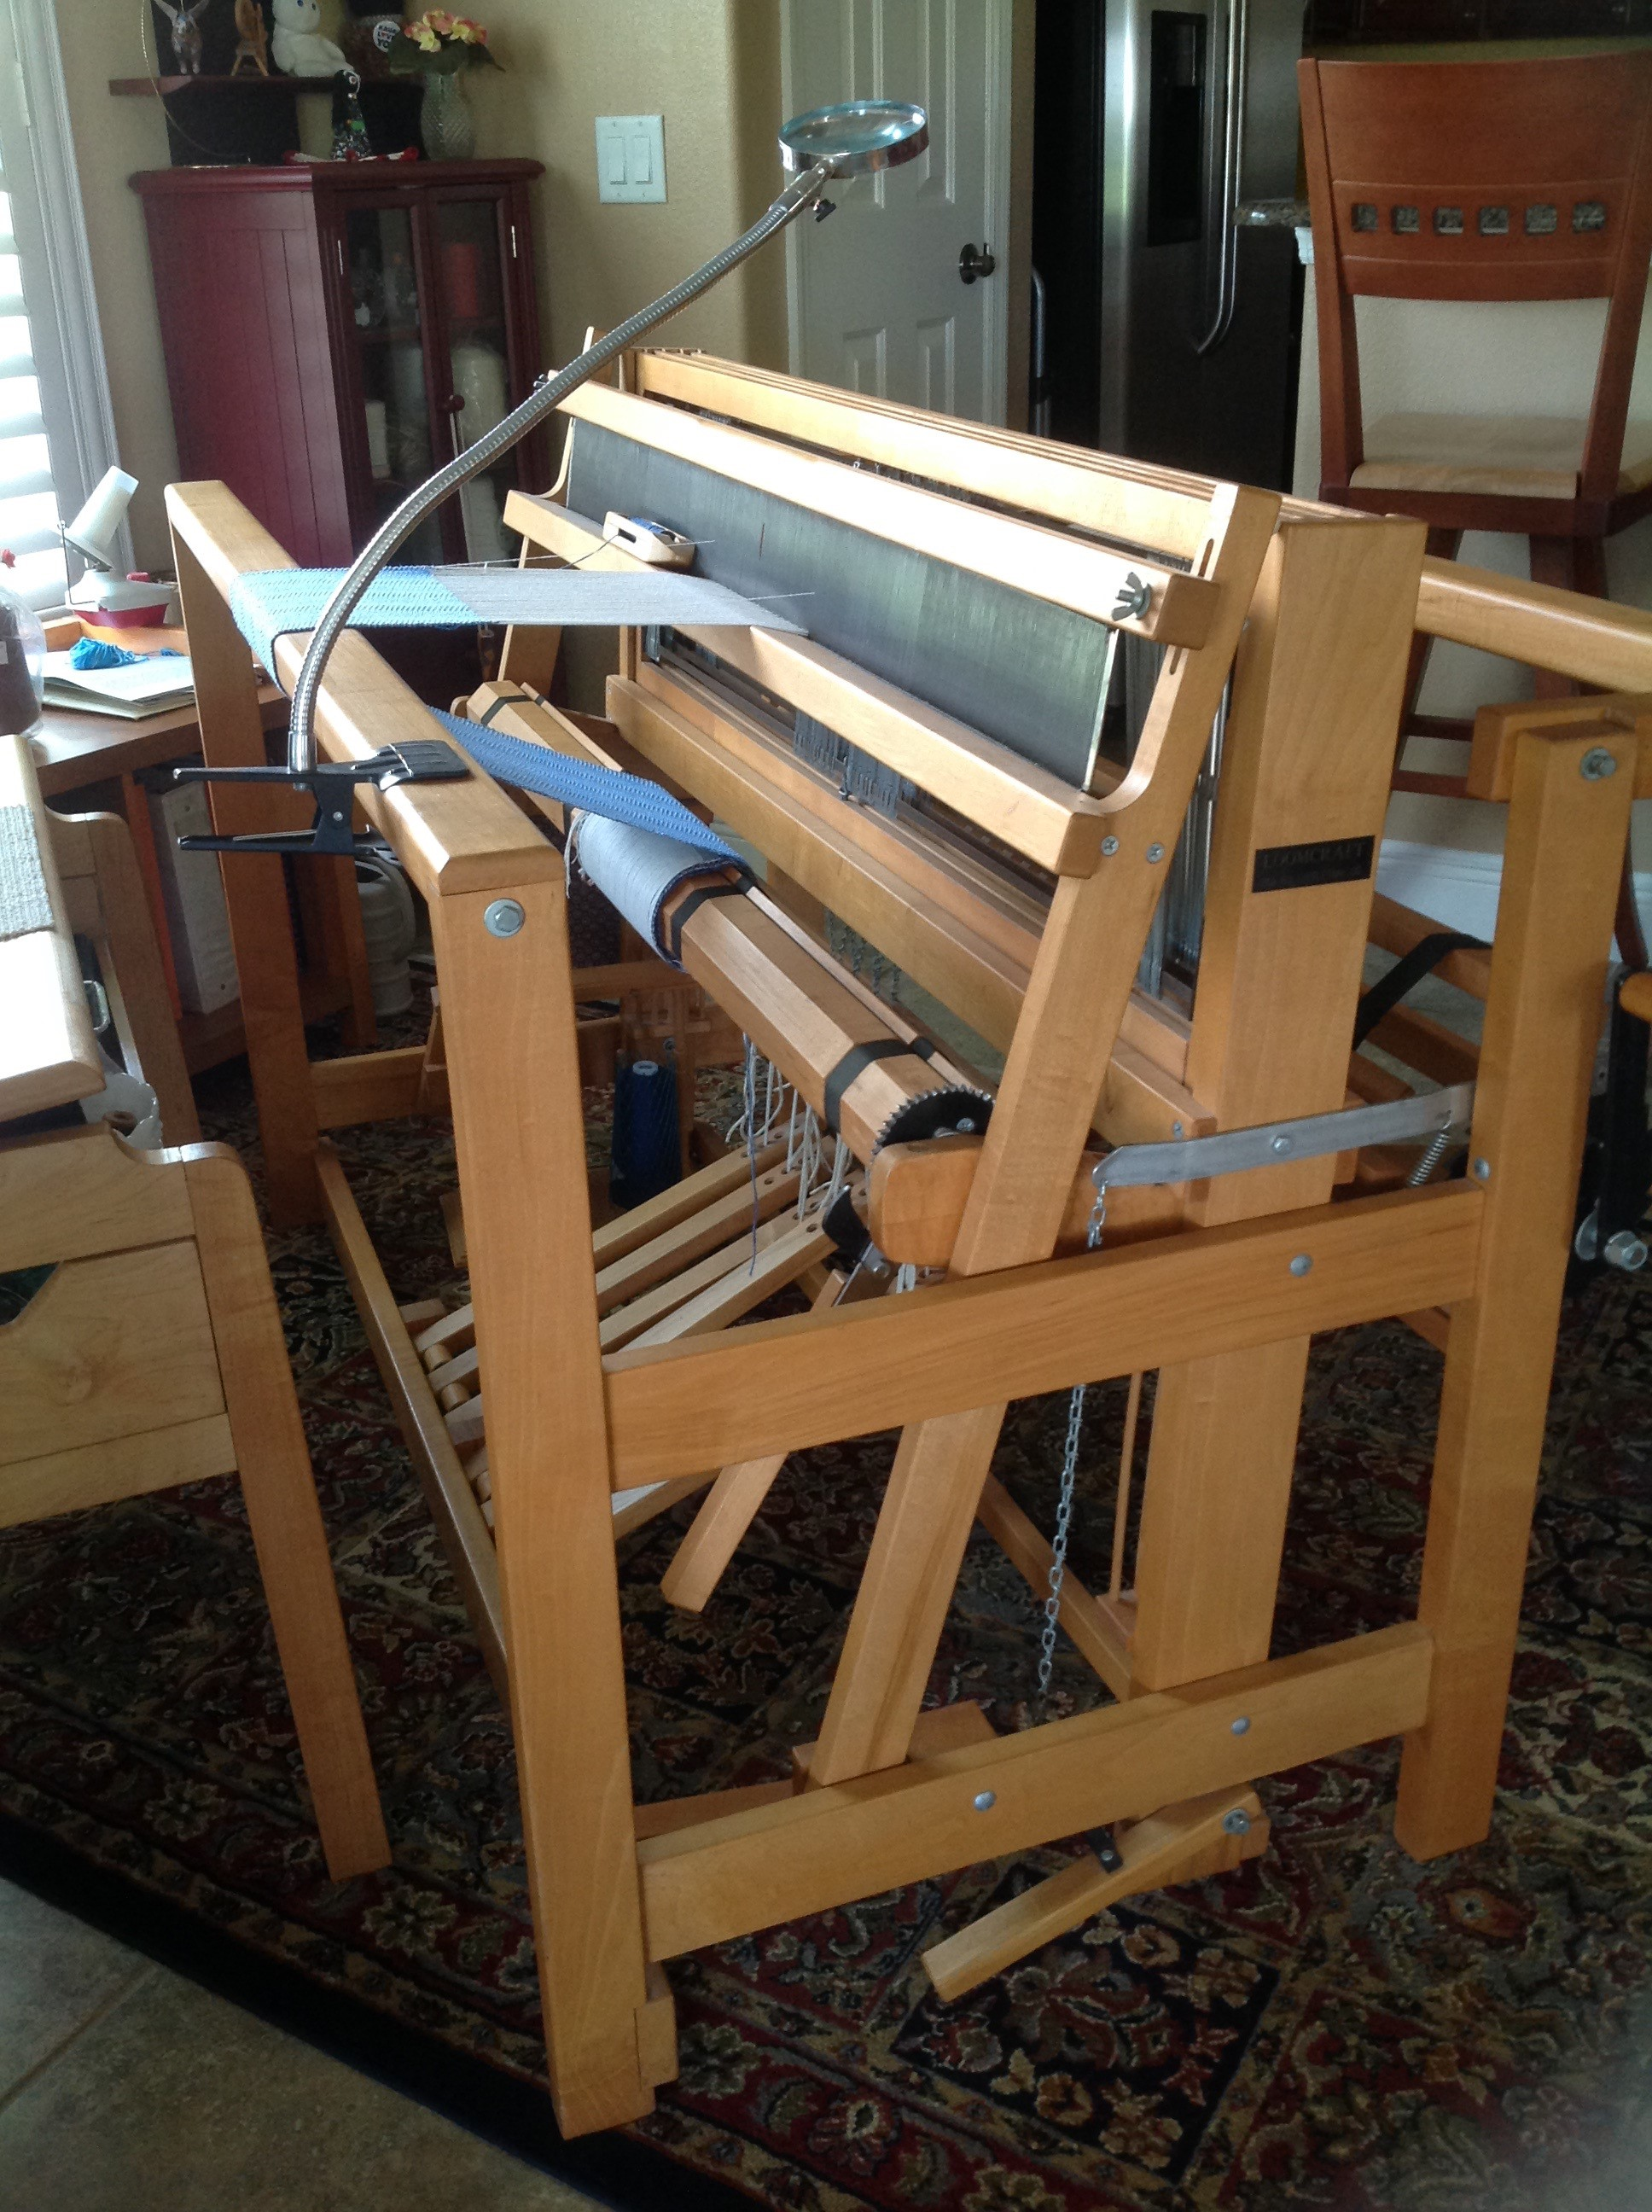 For Sale | Looking For | Donate | The Gainesville Handweavers' Guild